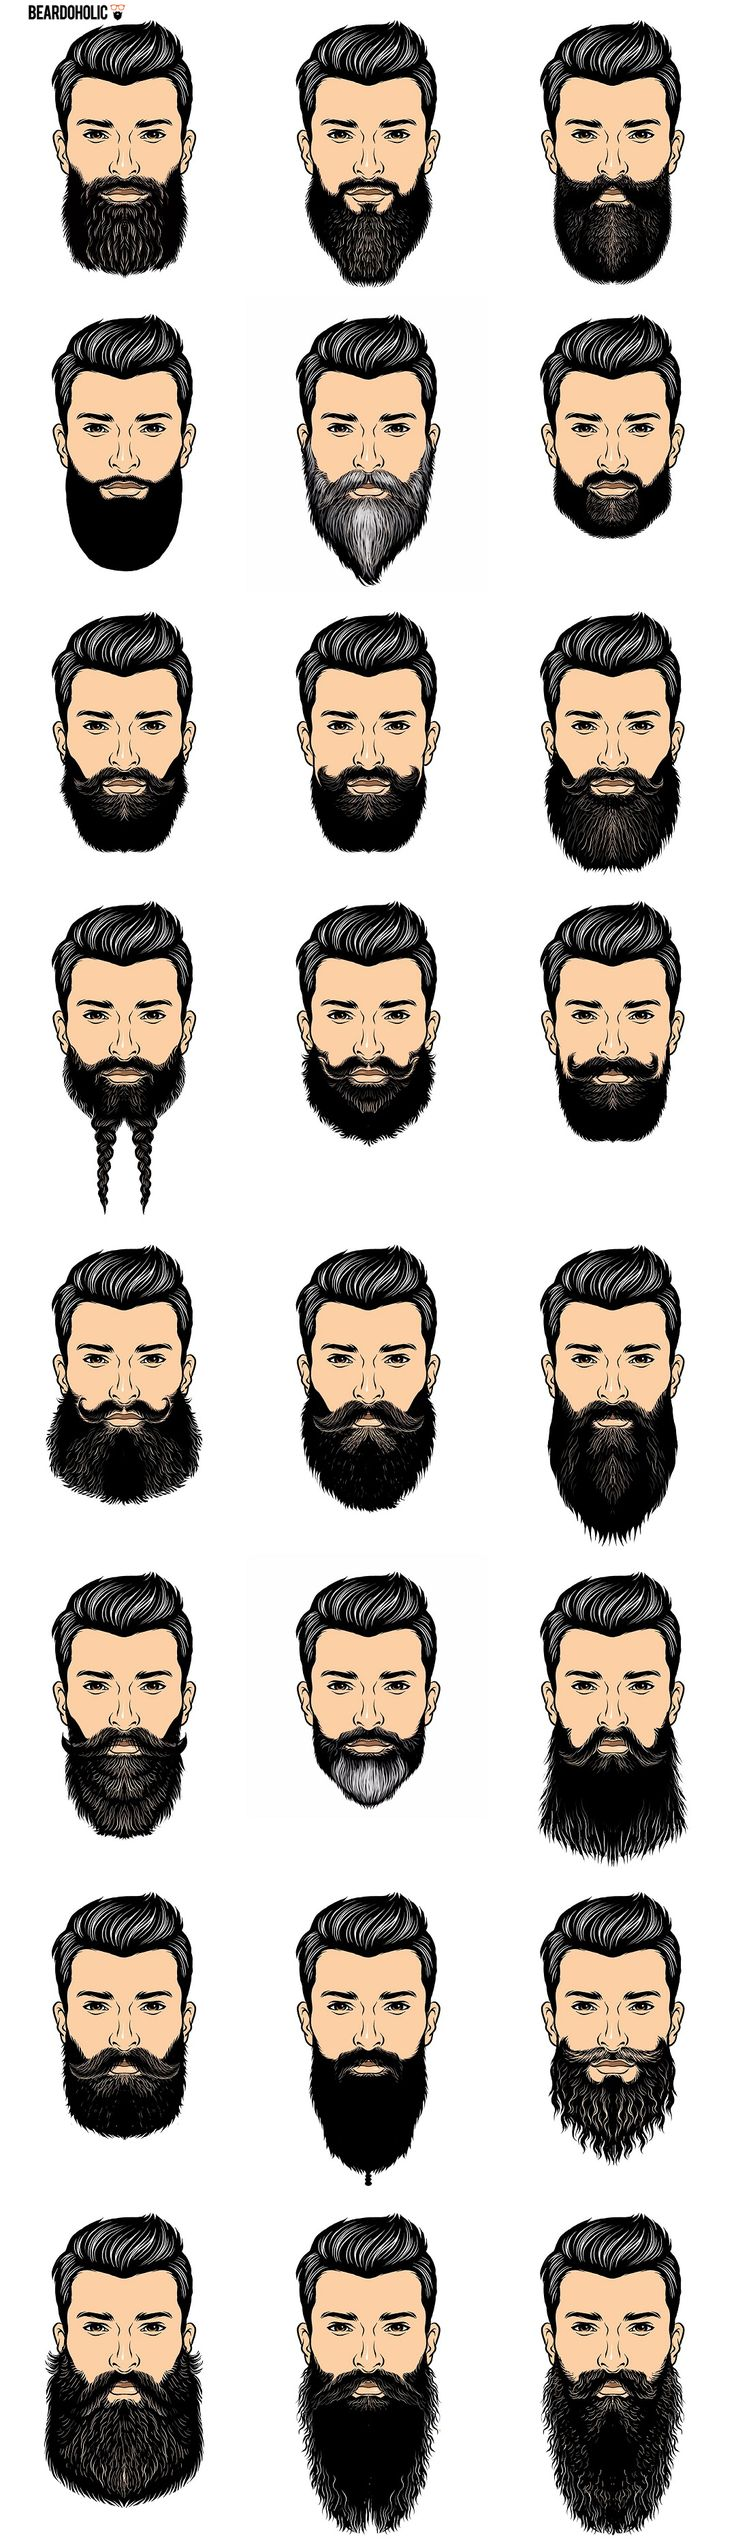 best 25 beards ideas on pinterest beard styles beard tips and barbe games. Black Bedroom Furniture Sets. Home Design Ideas